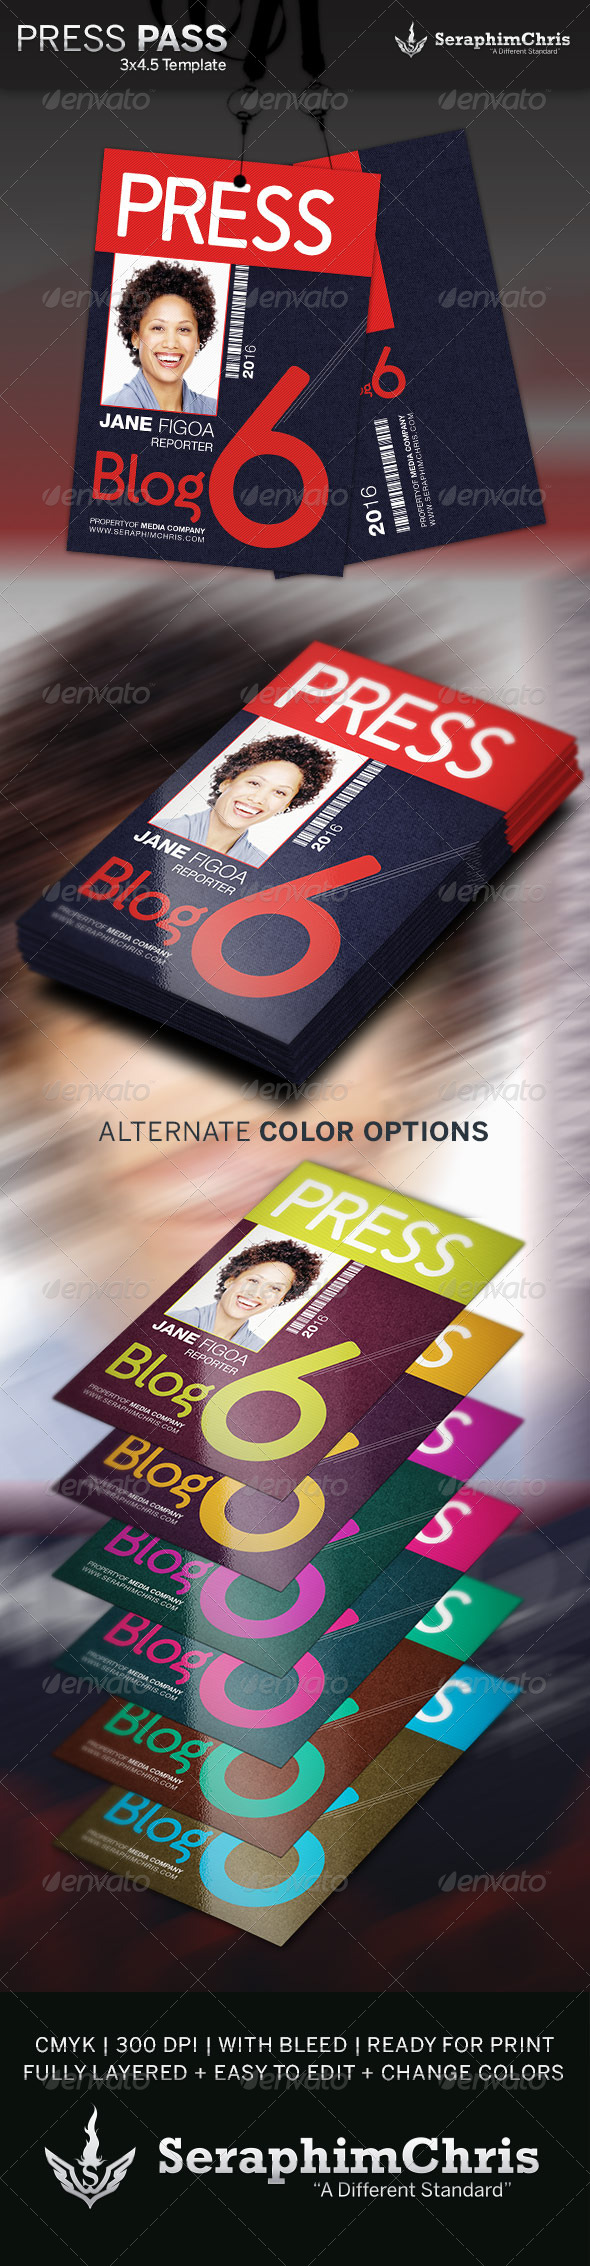 Press pass template 2 by seraphimchris graphicriver for Media press pass template